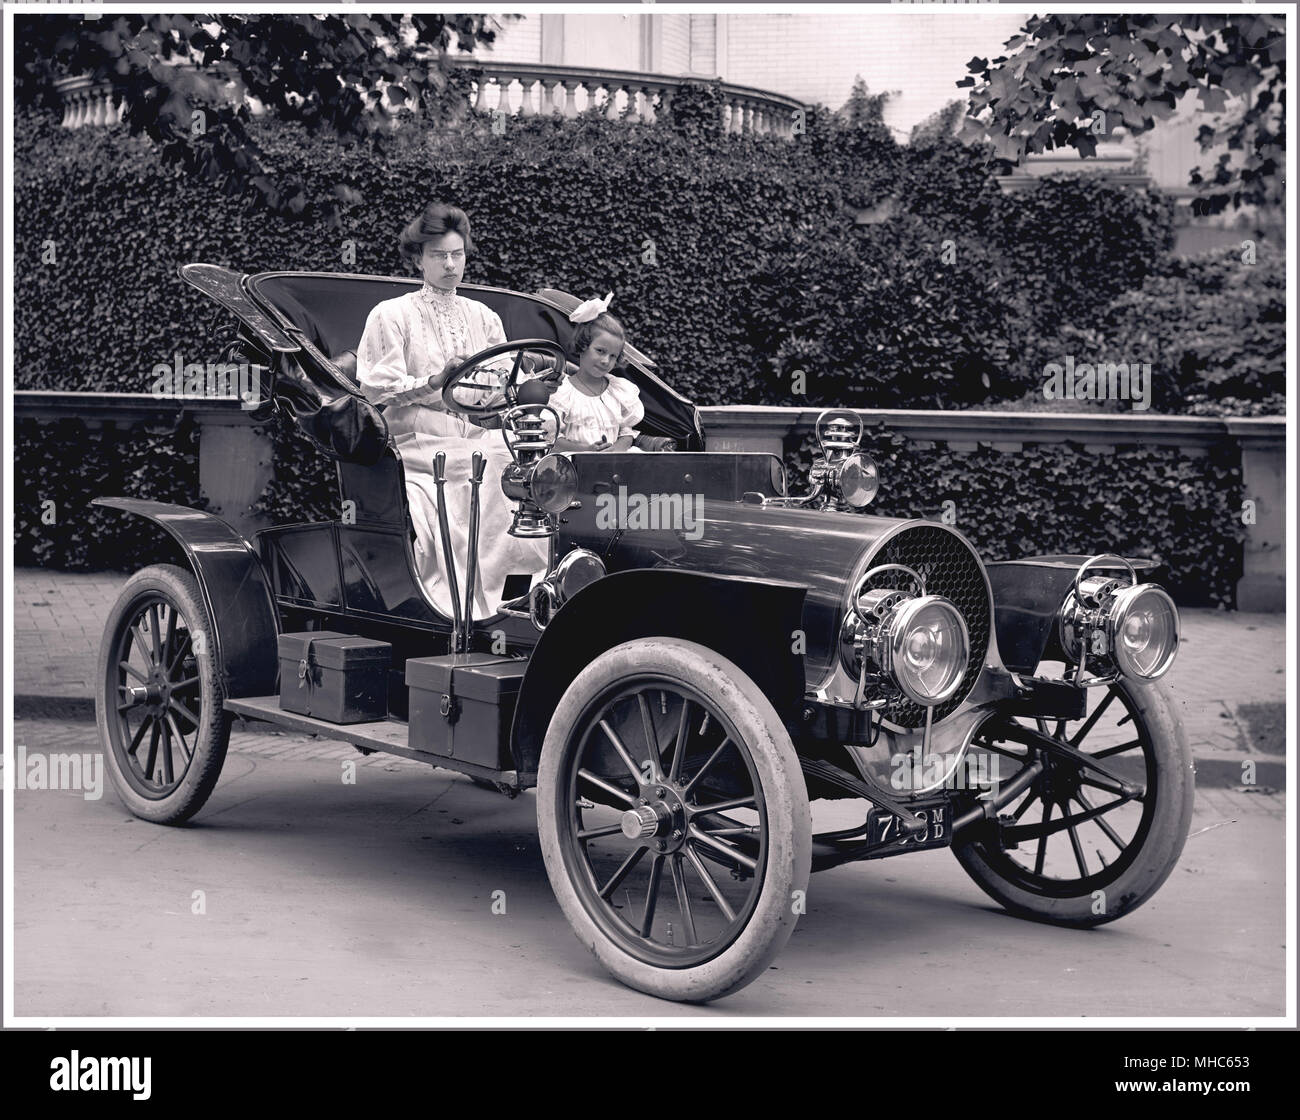 1907 Franklin Model D Roadster. Frank Bliven was a Washington, D.C. Franklin Auto dealer. Mrs. F.S. Bliven and daughter are featured. The Franklin Automobile Company produced vehicles from 1902 through 1934. They are best remembered for air-cooled engines, wooden frames, and full-elliptic springs.In 1907, the Model D was available as a four-person touring car, a two-person runabout, or a five-person Landaulette. The Model D rested on a wheelbase that measured 105-inches and powered by a four-cylinder engine that offered 20 horsepower The Great Depression was responsible for ending the brand. - Stock Image